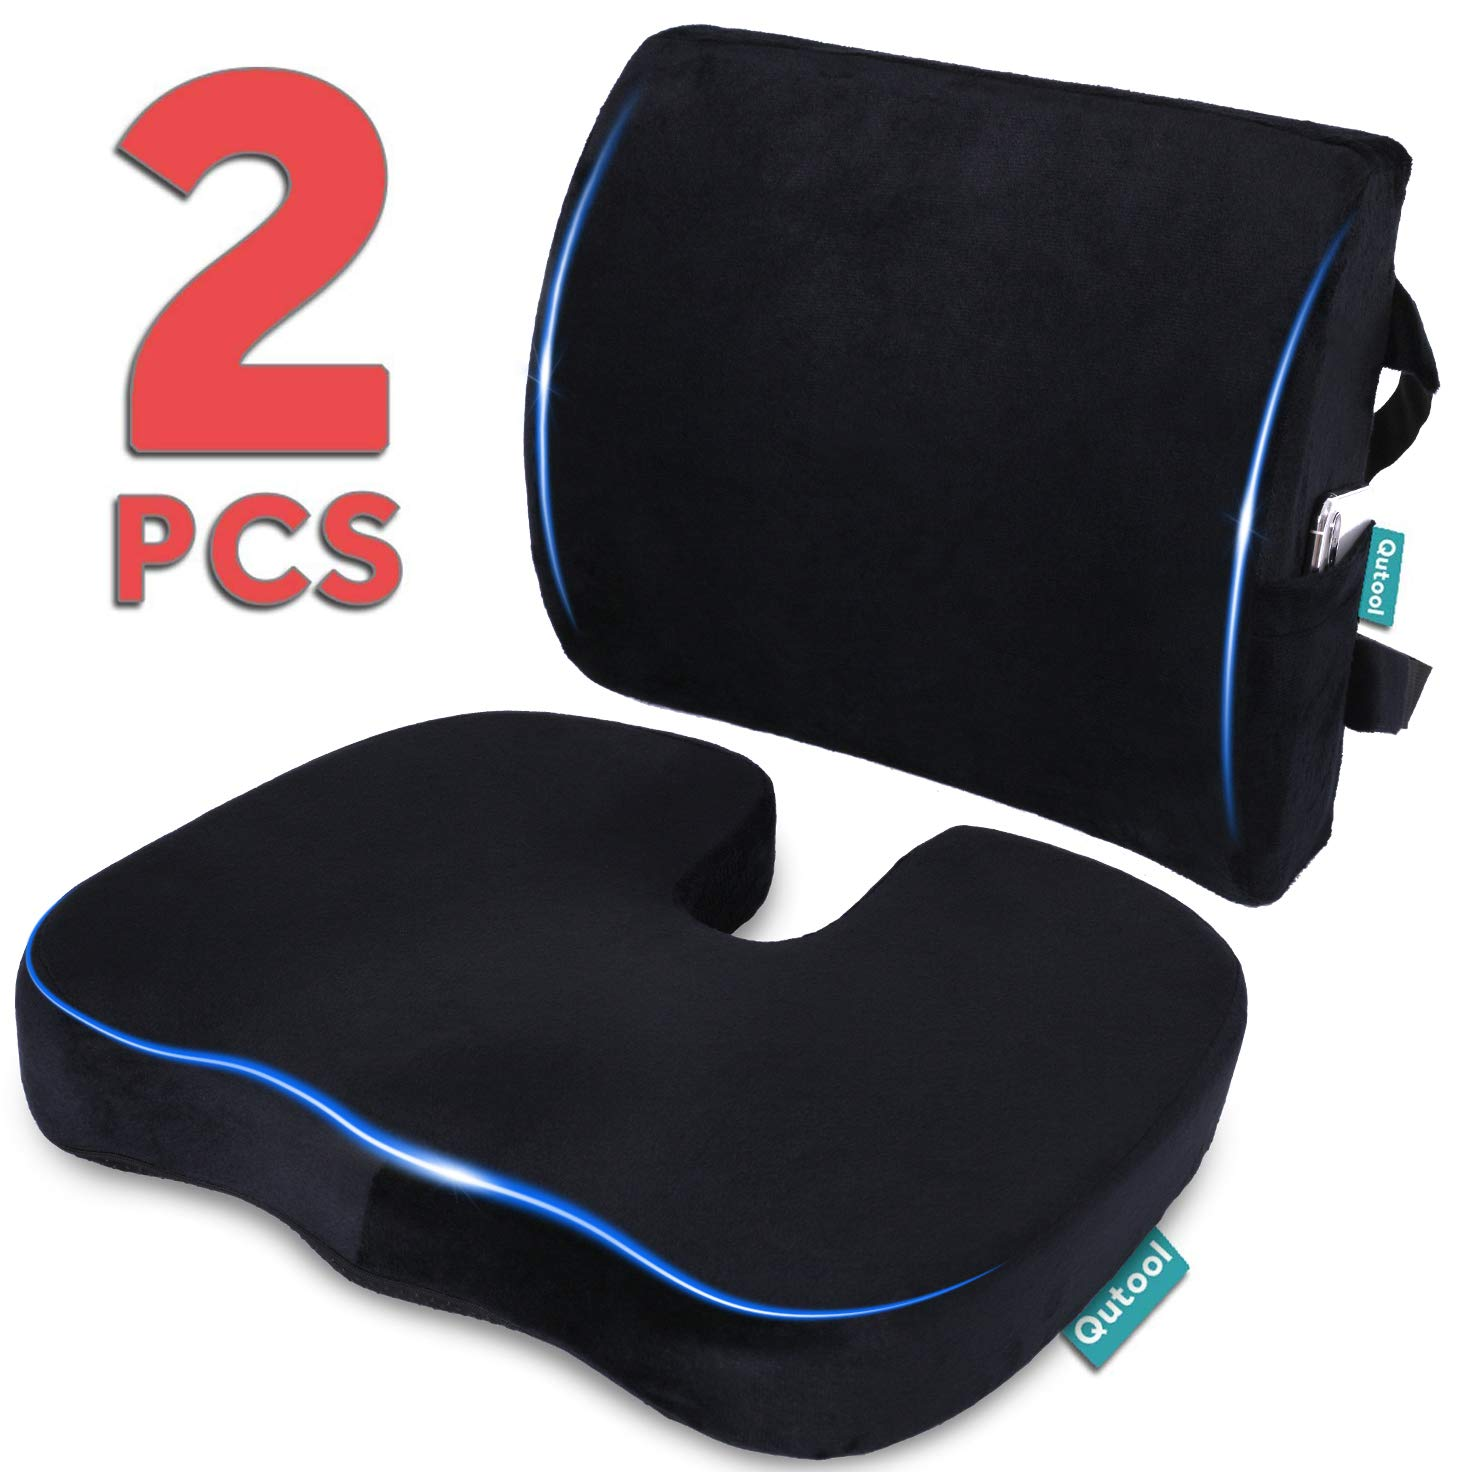 B074CV2HQC Seat Cushion Coccyx Orthopedic Memory Foam and Lumbar Support Pillow for Office Chair and Car Chair Cushion for Low Back Support, Tailbone Pain, Sciatica Relief Black Qutool 619VVwCfz1L